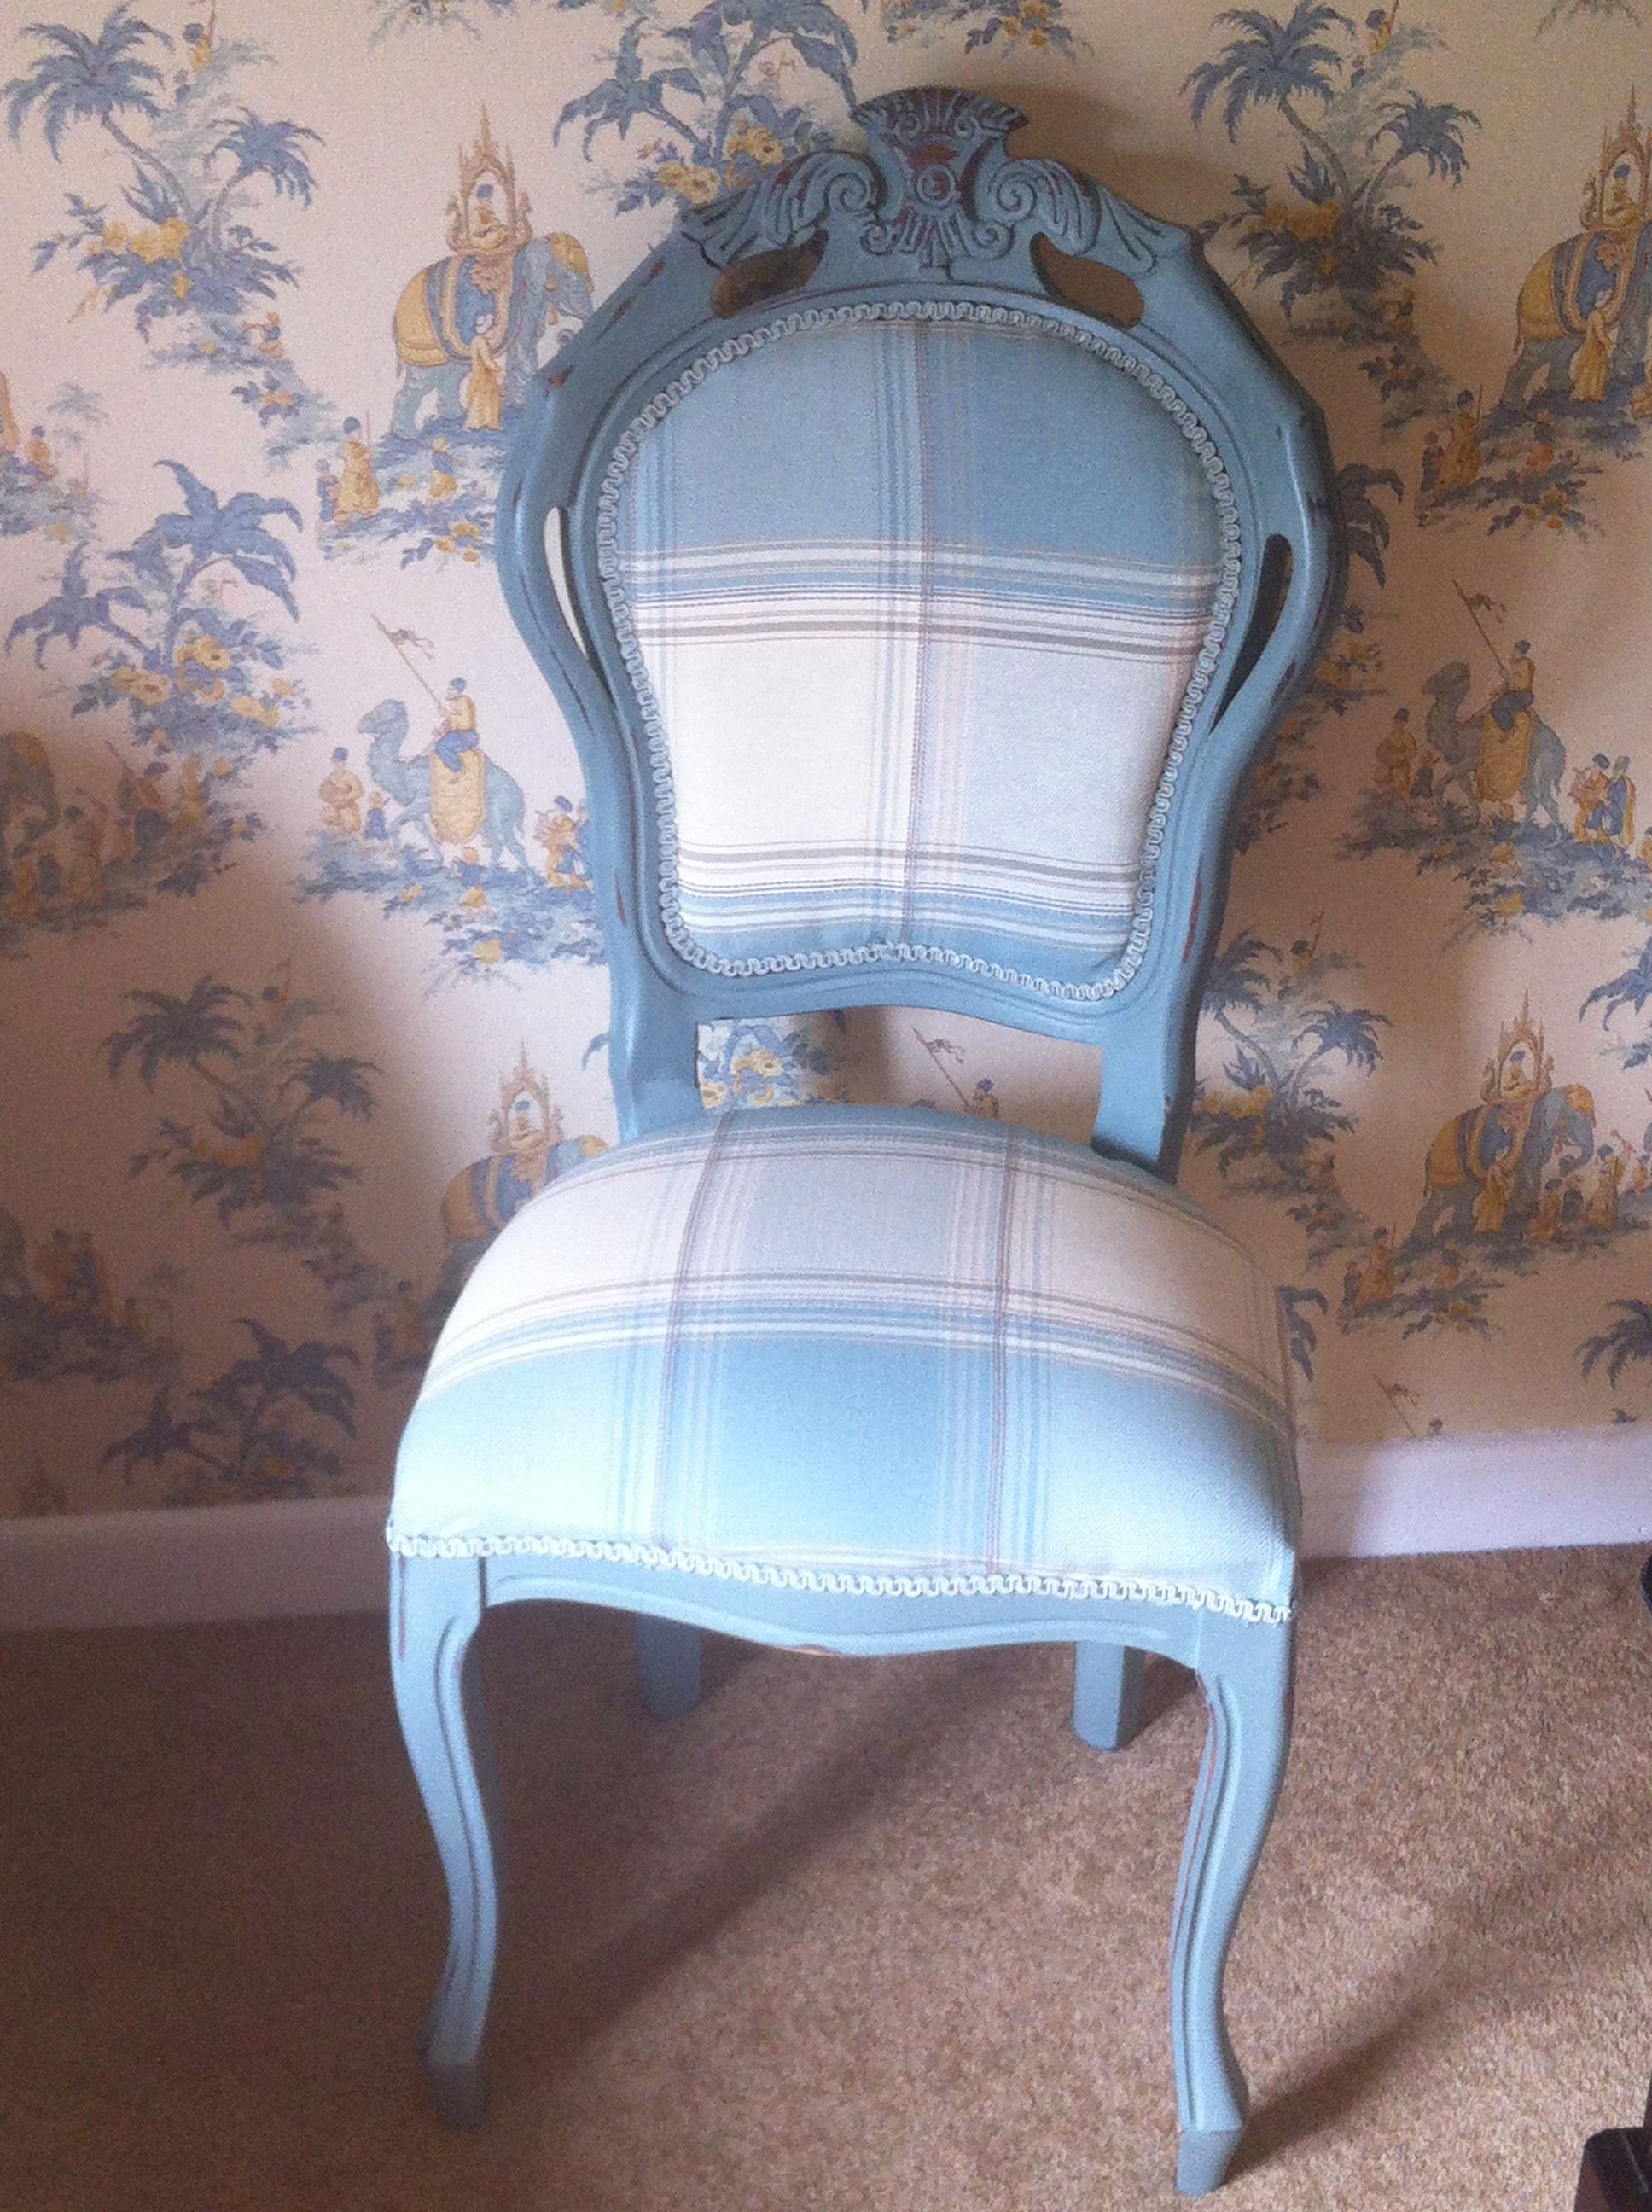 Shabby Chic Bedroom Chair Pretty Shabby Chic Bedroom Chair Painted In Annie Sloan Duck